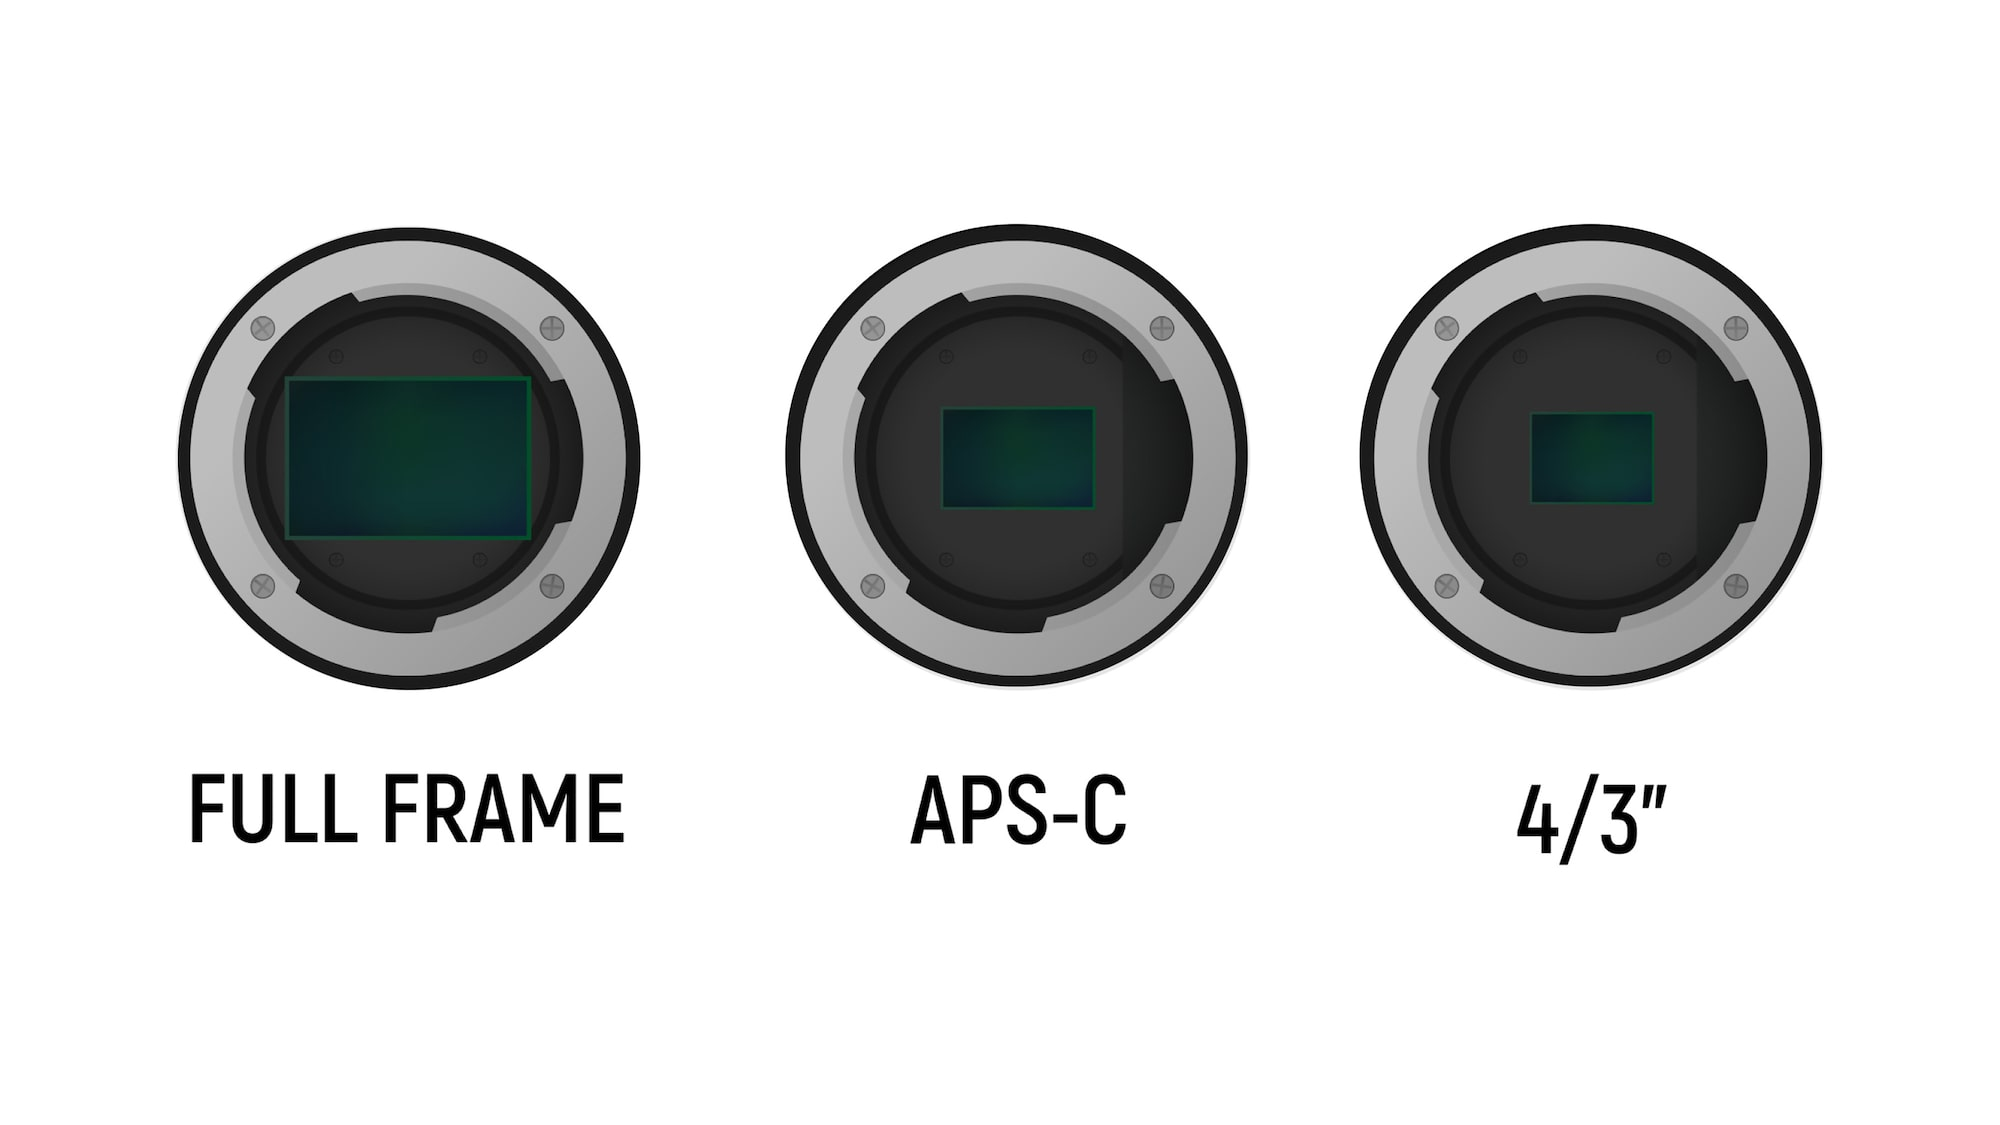 Full-frame vs APS-C vs micro four-thirds camera sensors